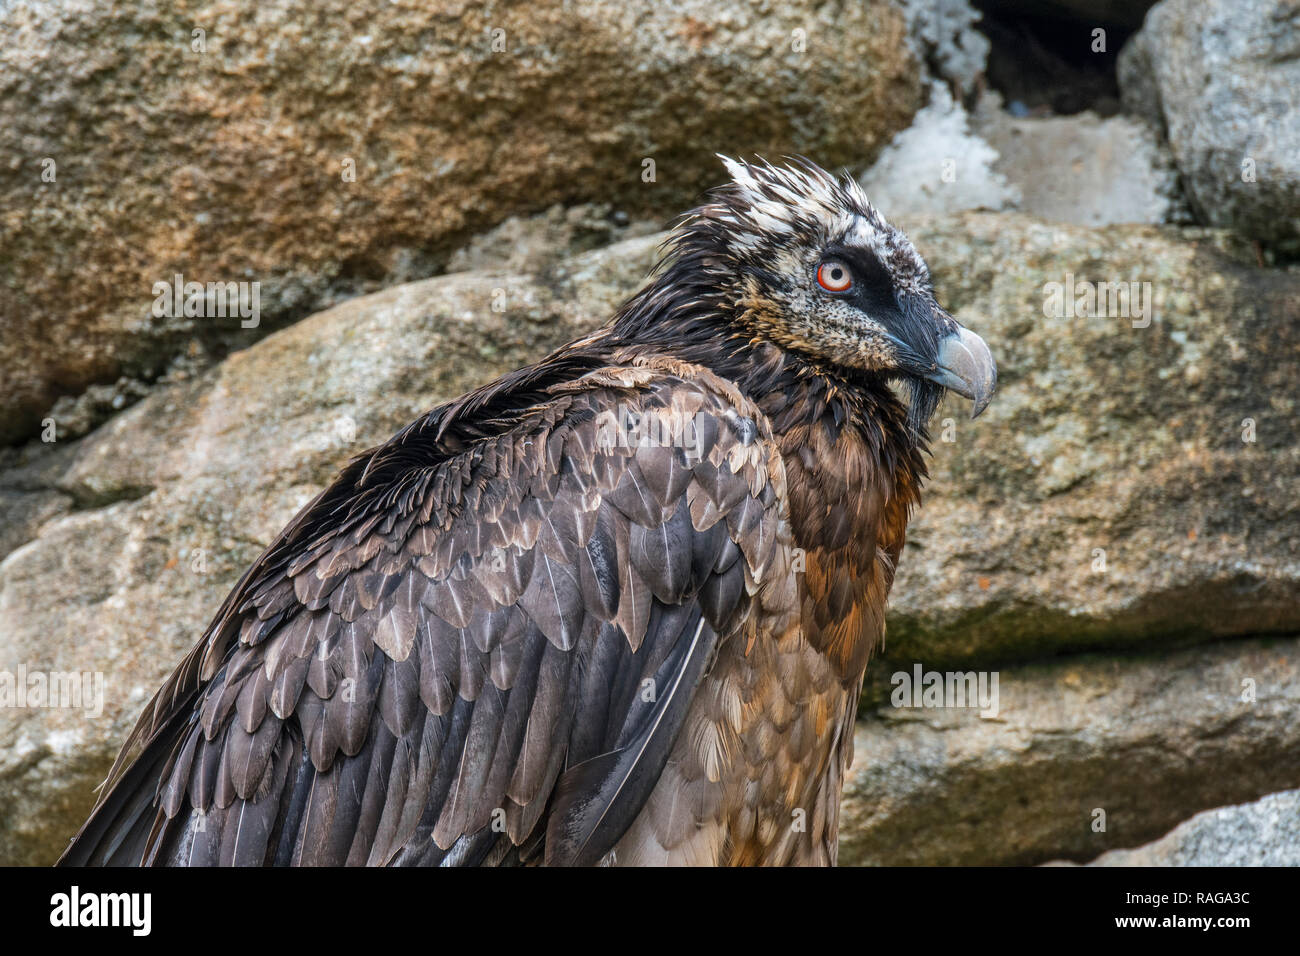 Bearded vulture / Lämmergeier (Gypaetus barbatus) perched in rock face - Stock Image